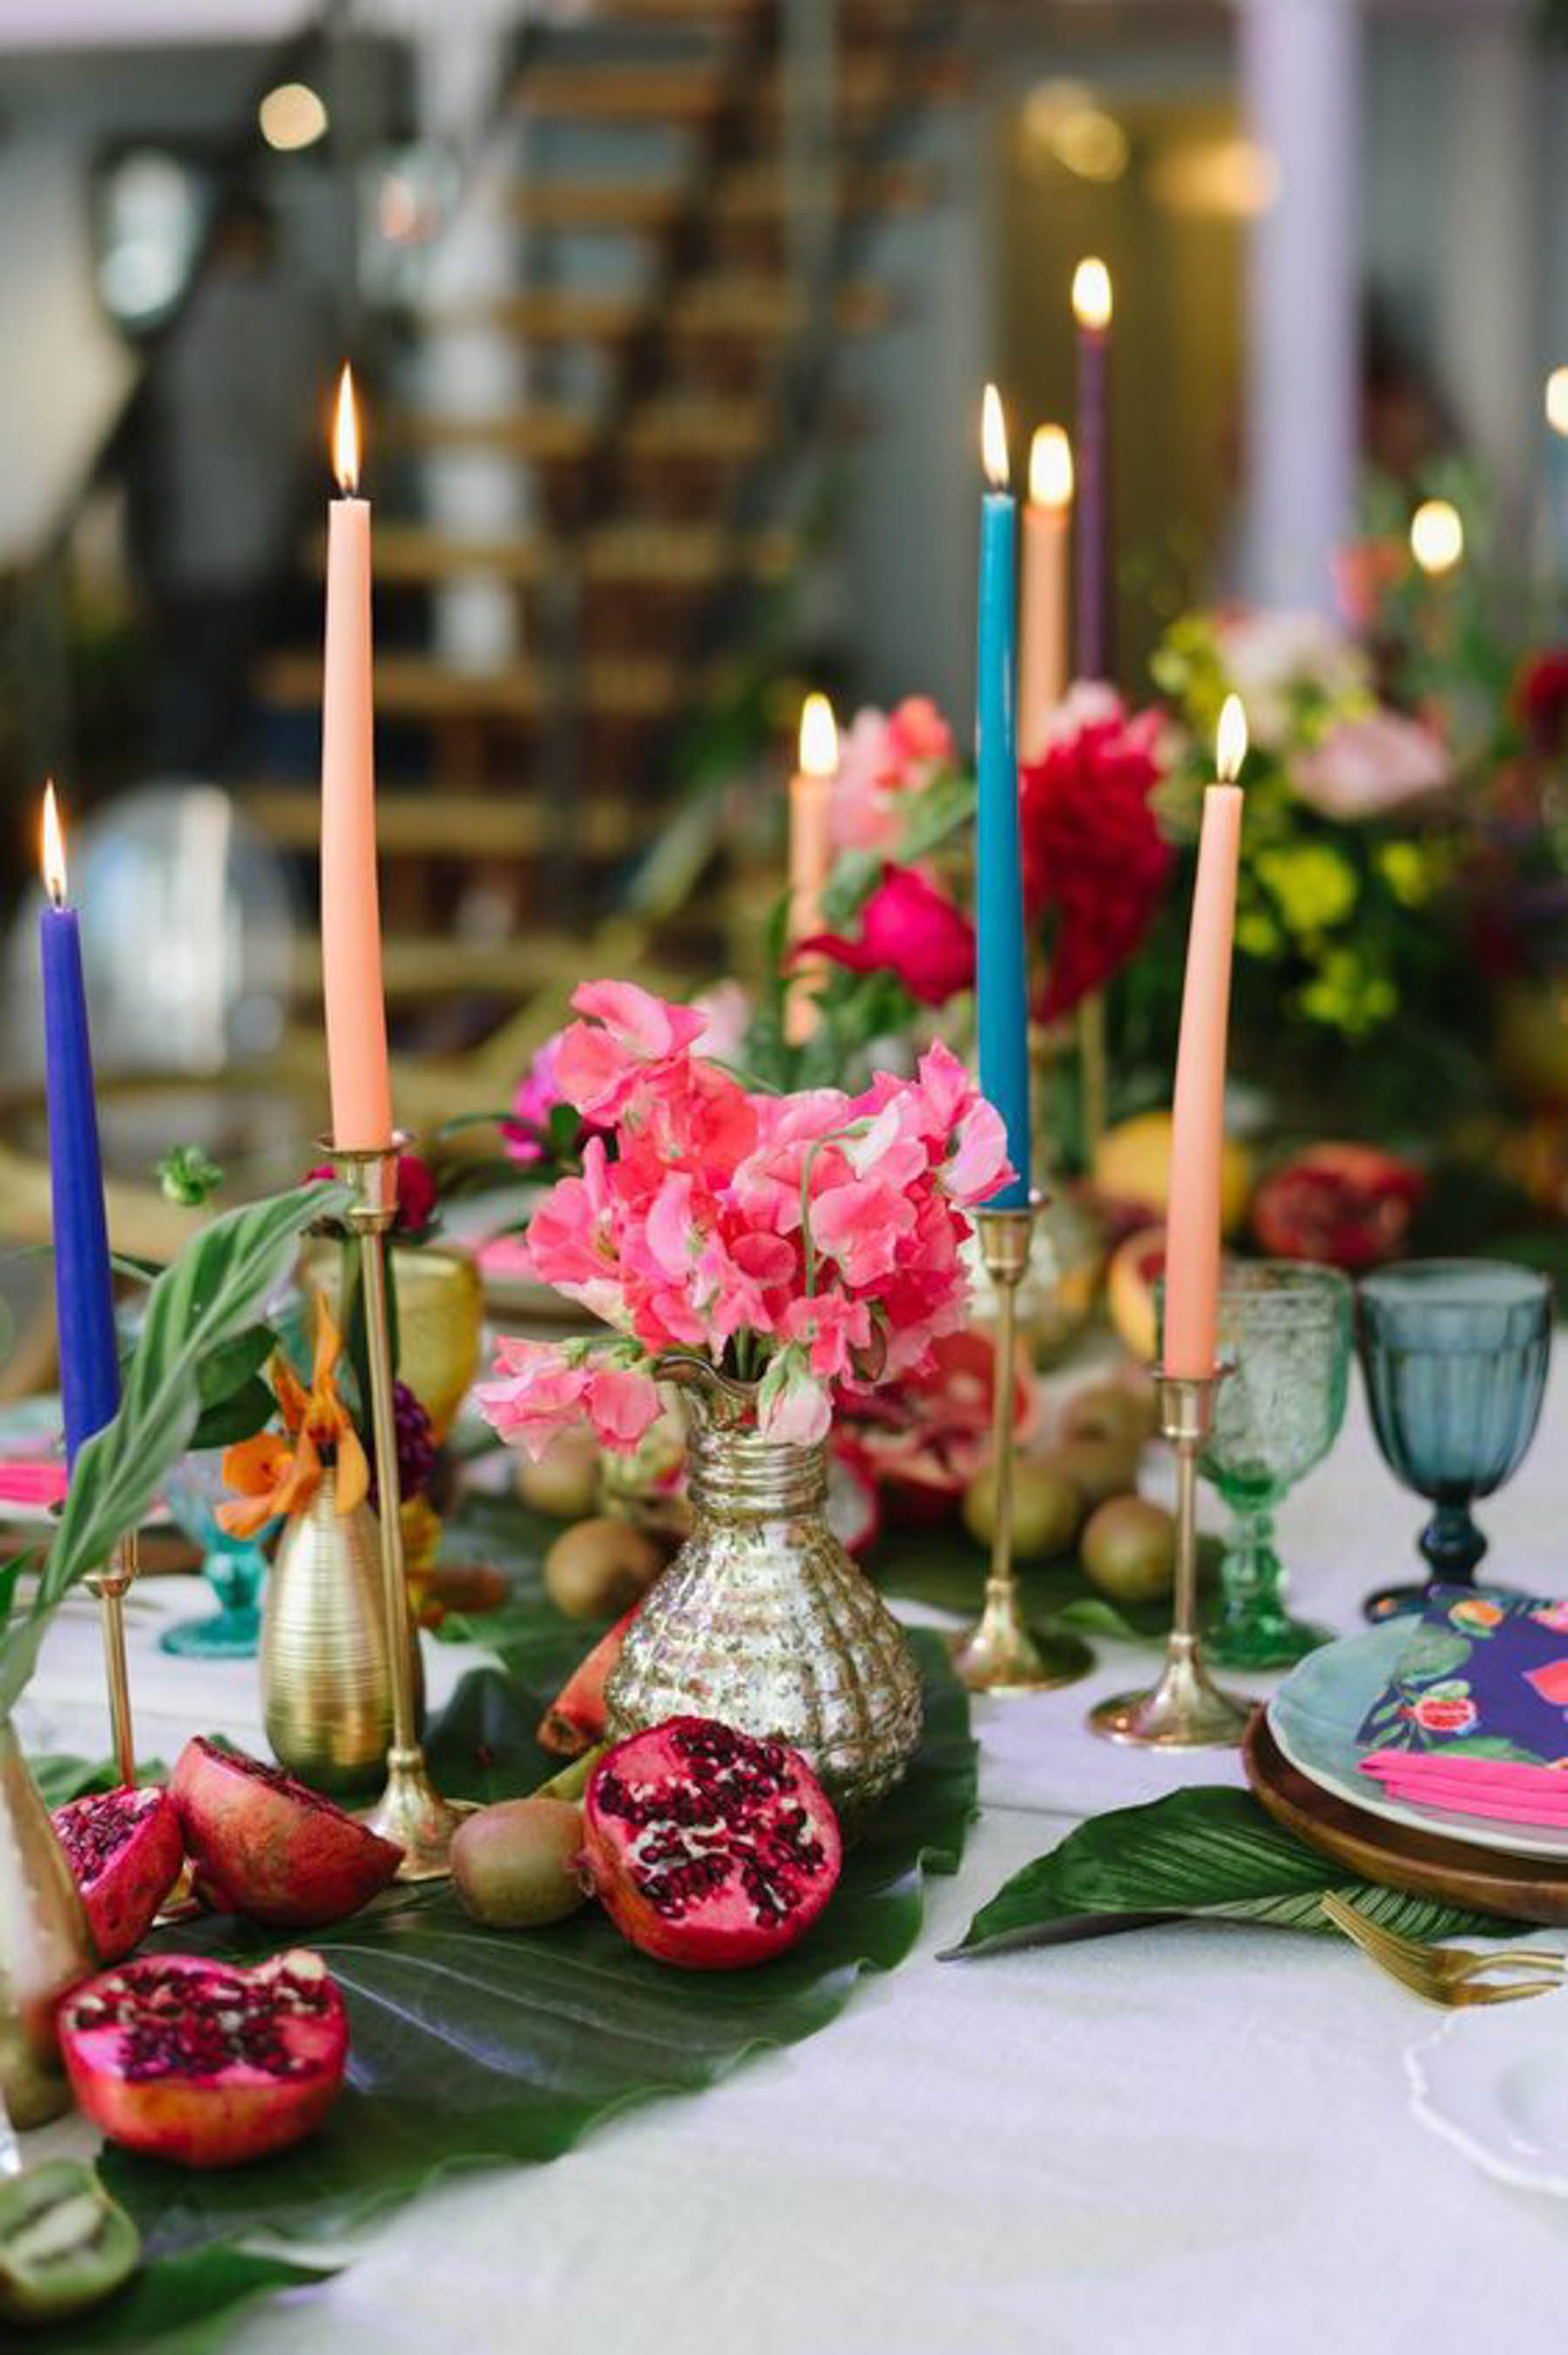 Enhance your Indian wedding reception party with mismatched wedding decor